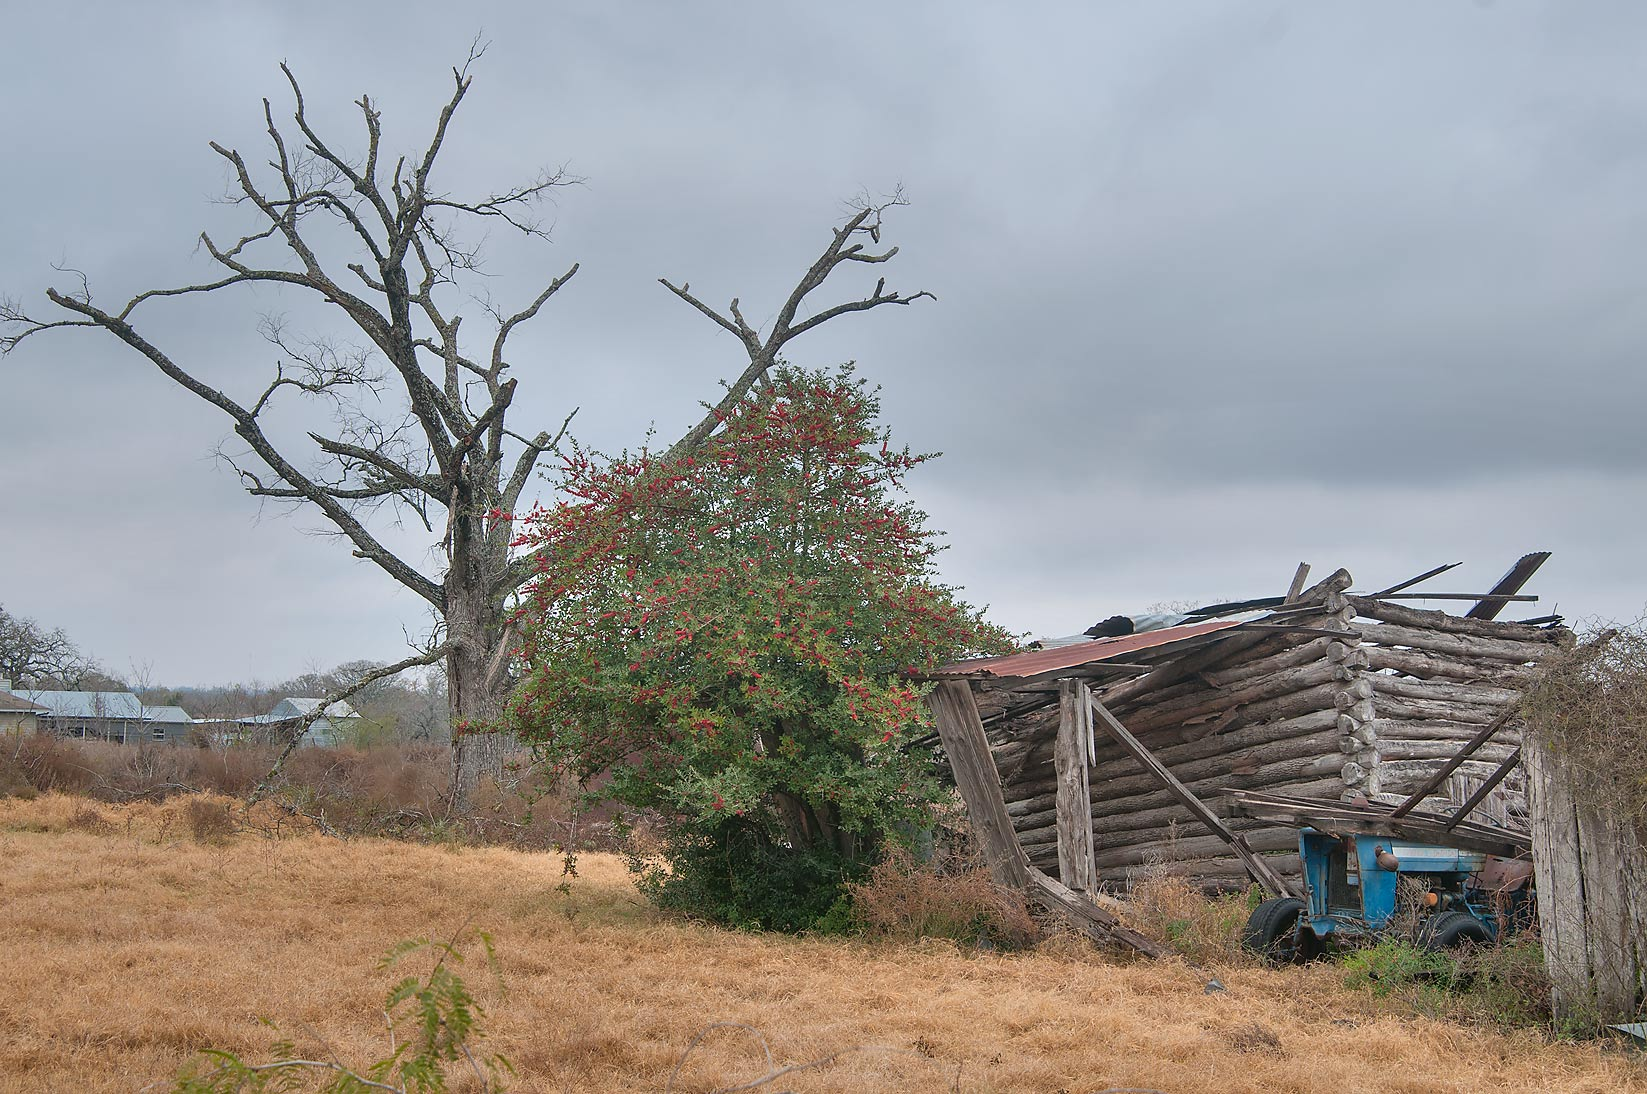 Abandoned farm at County Rd. 419 near North Zulch. Texas